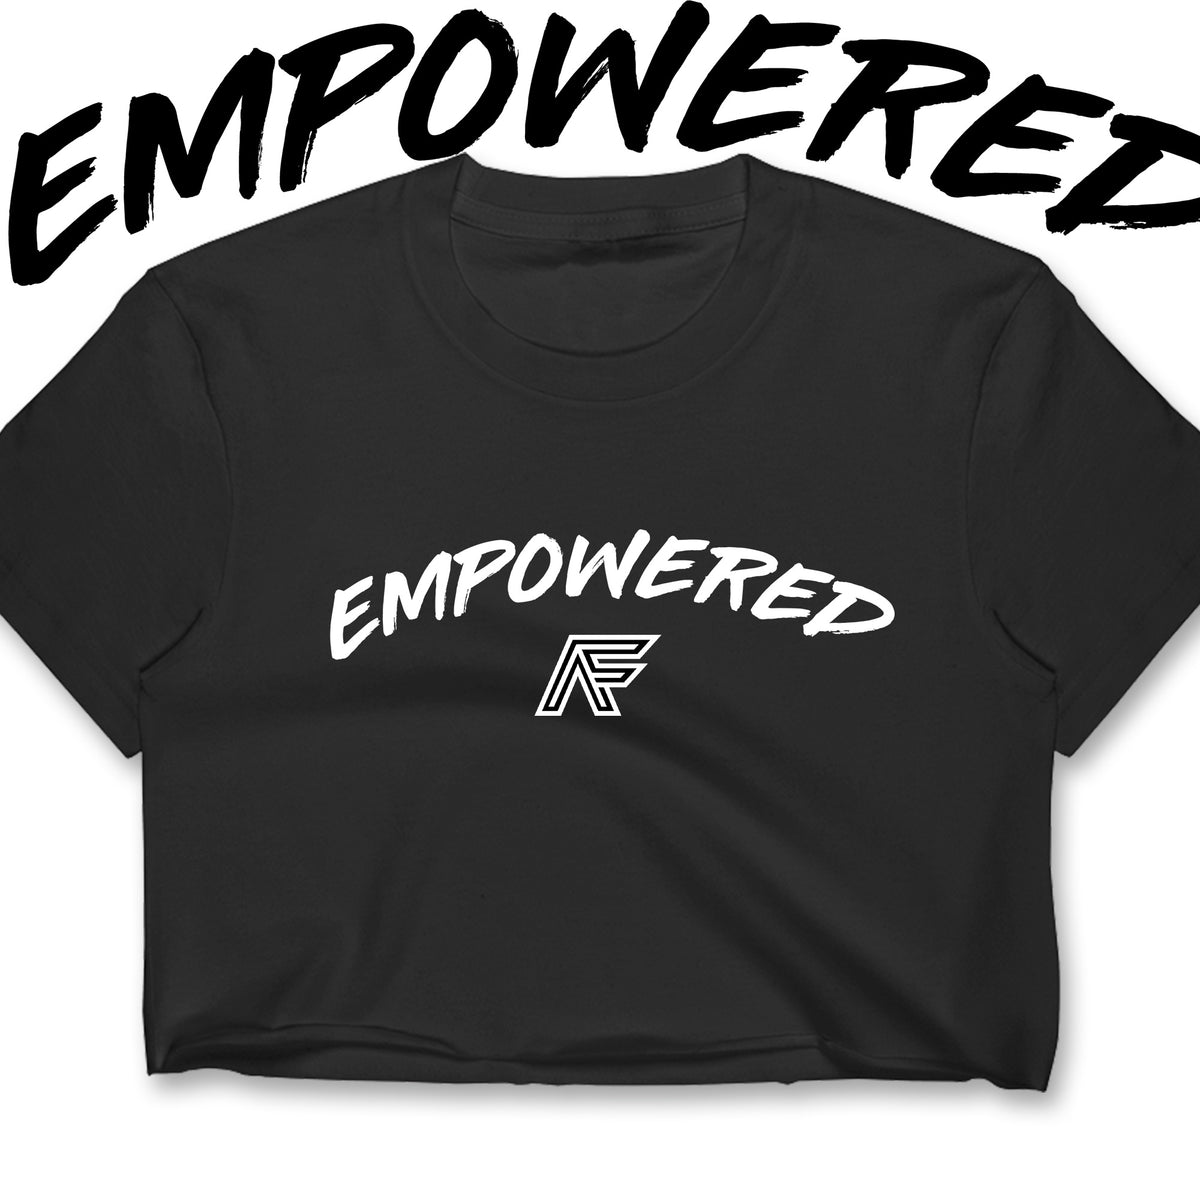 Empowered AF Crop Top